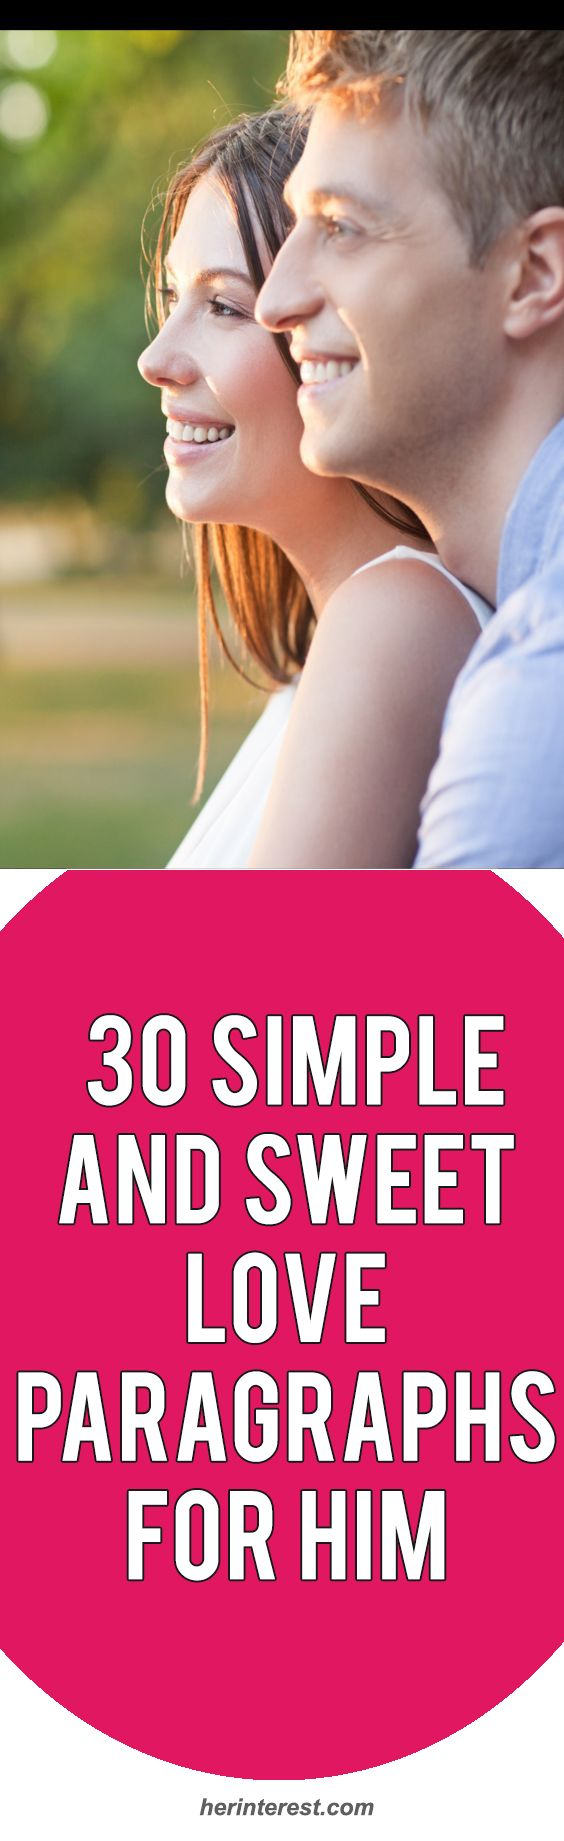 30 Simple and Sweet Love Paragraphs for Him